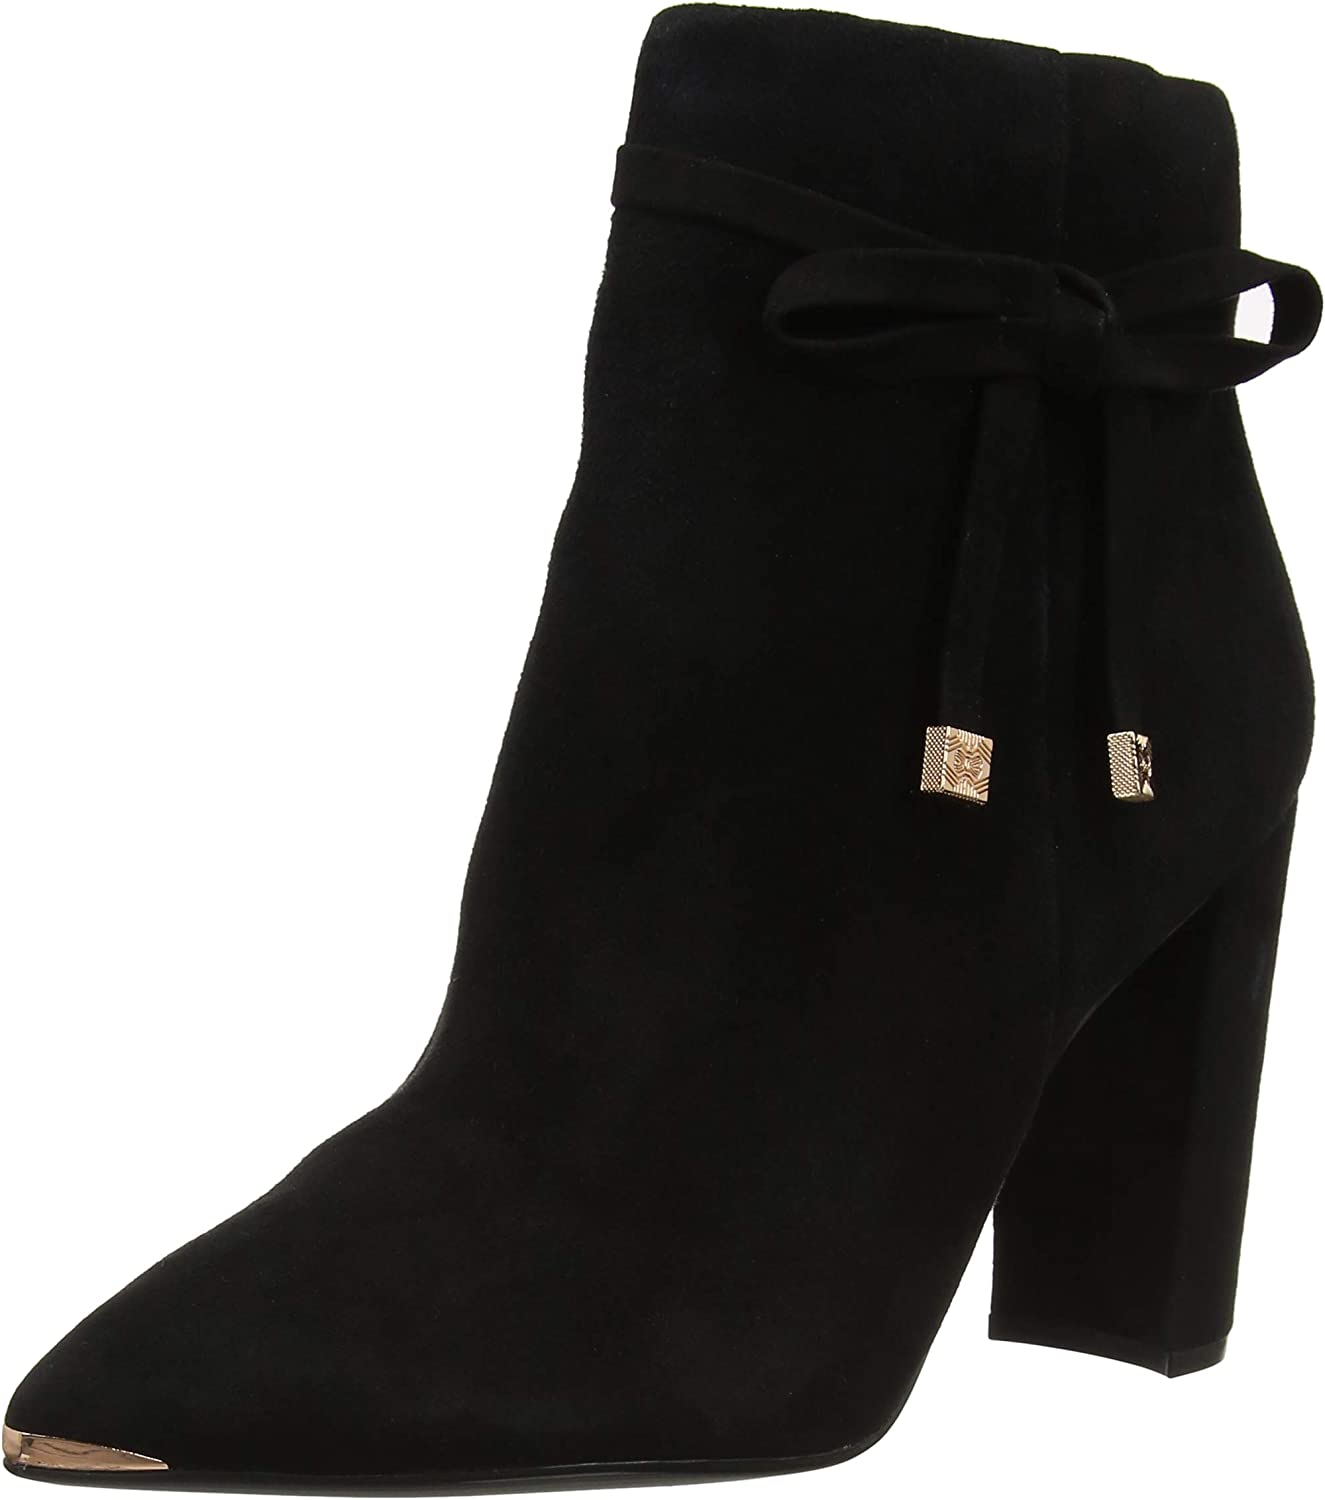 Ted Baker Qatena, Women's Ankle Boots